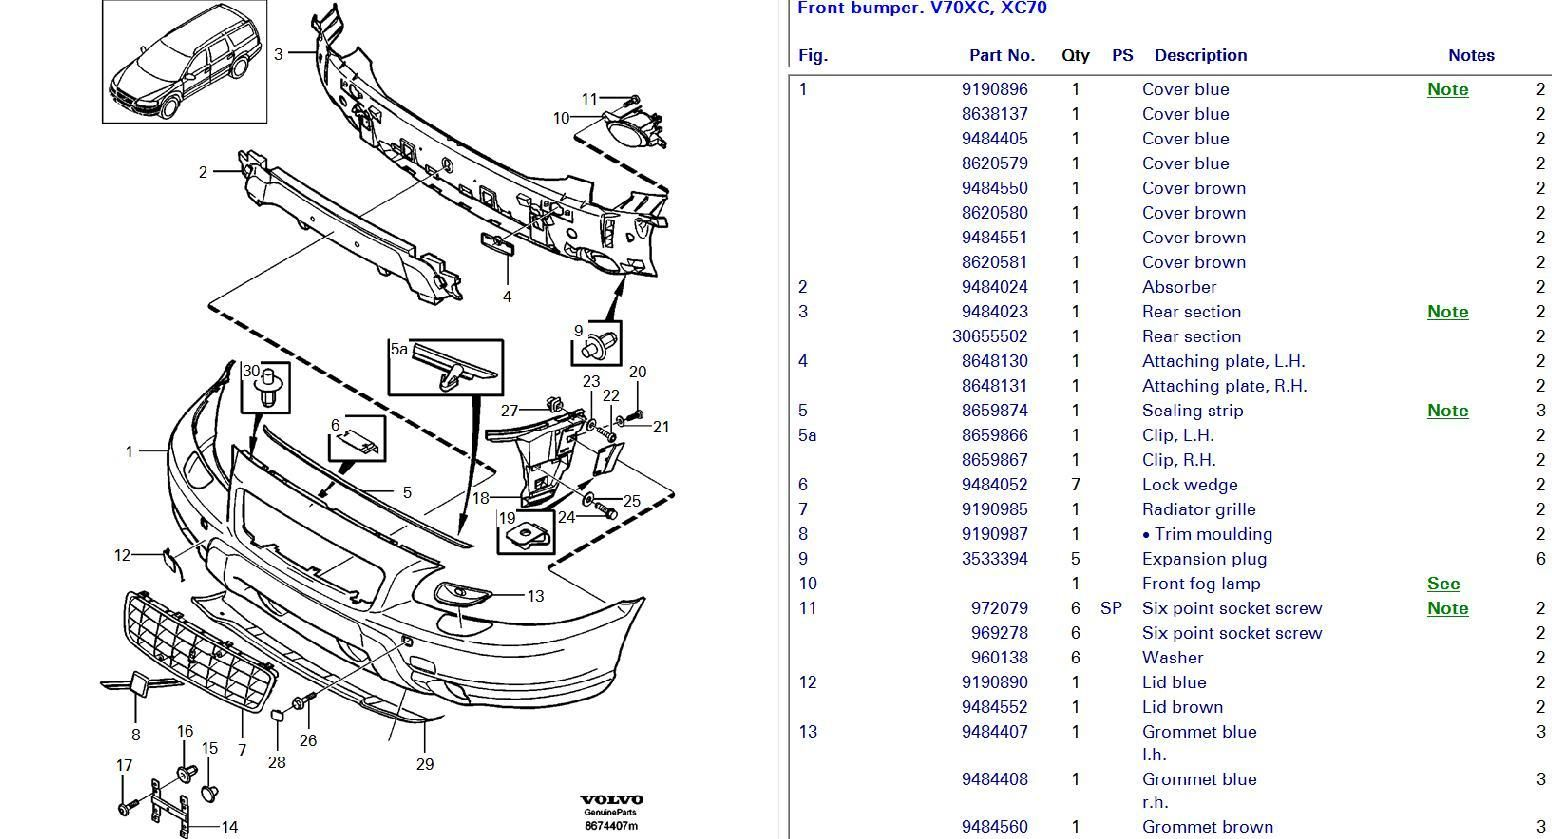 Service Manual How To Remove Front Bumper Volvo Xc70